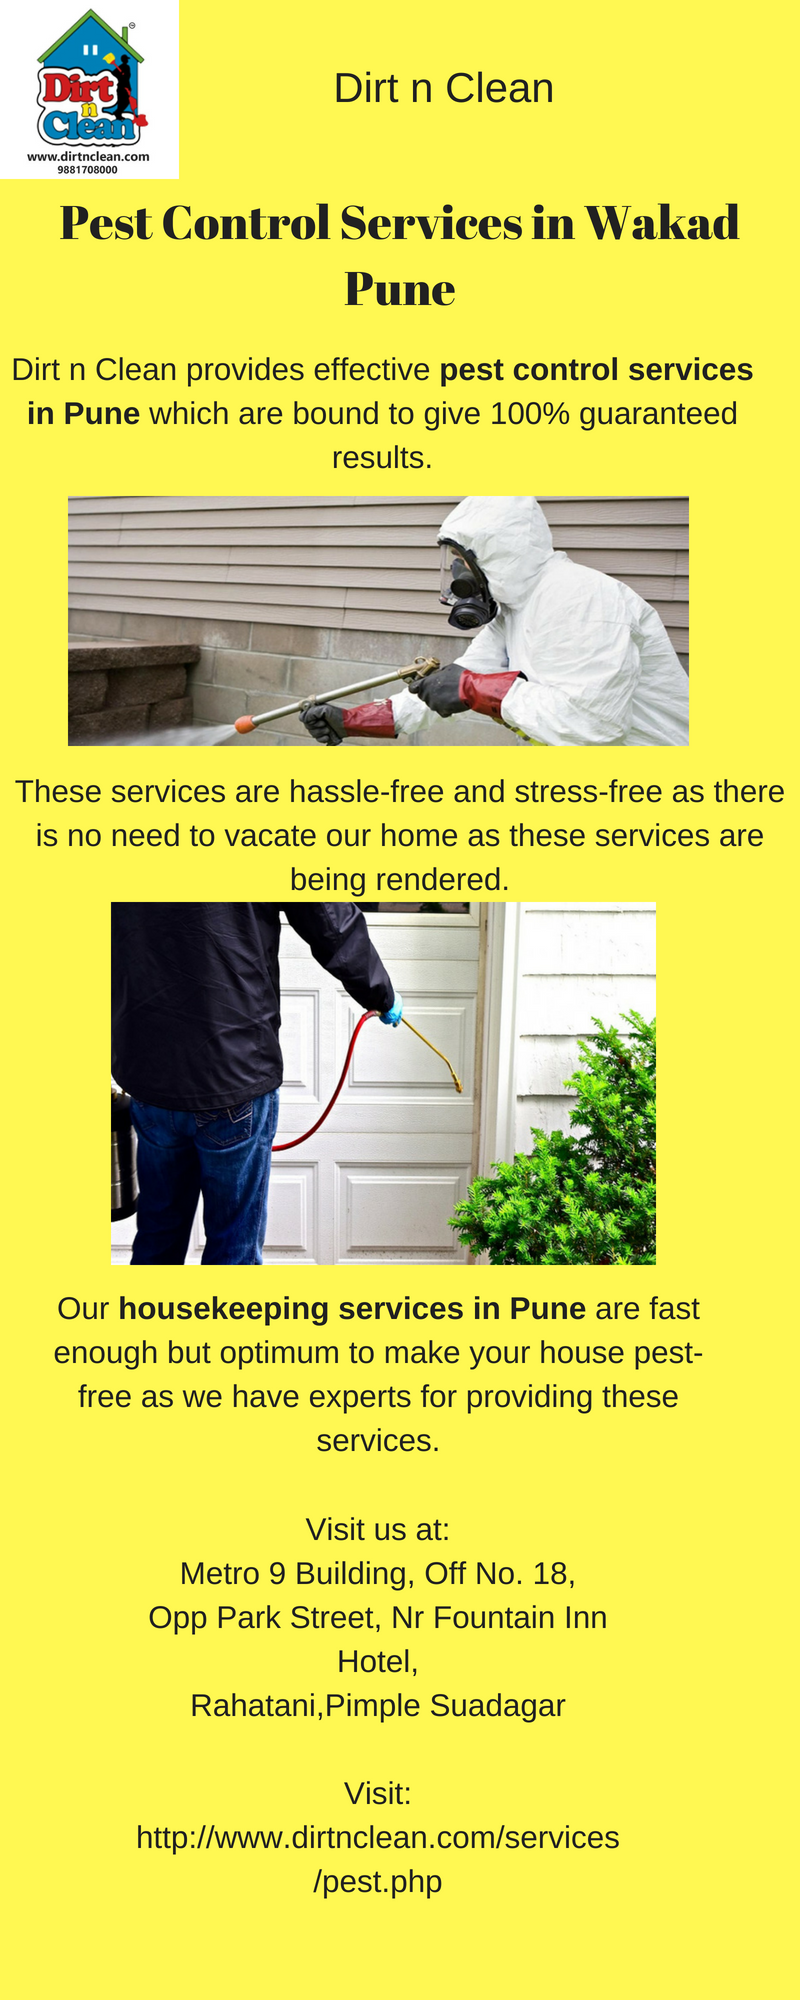 Dirt N Clean Is One Of The Best Pest Control Services In